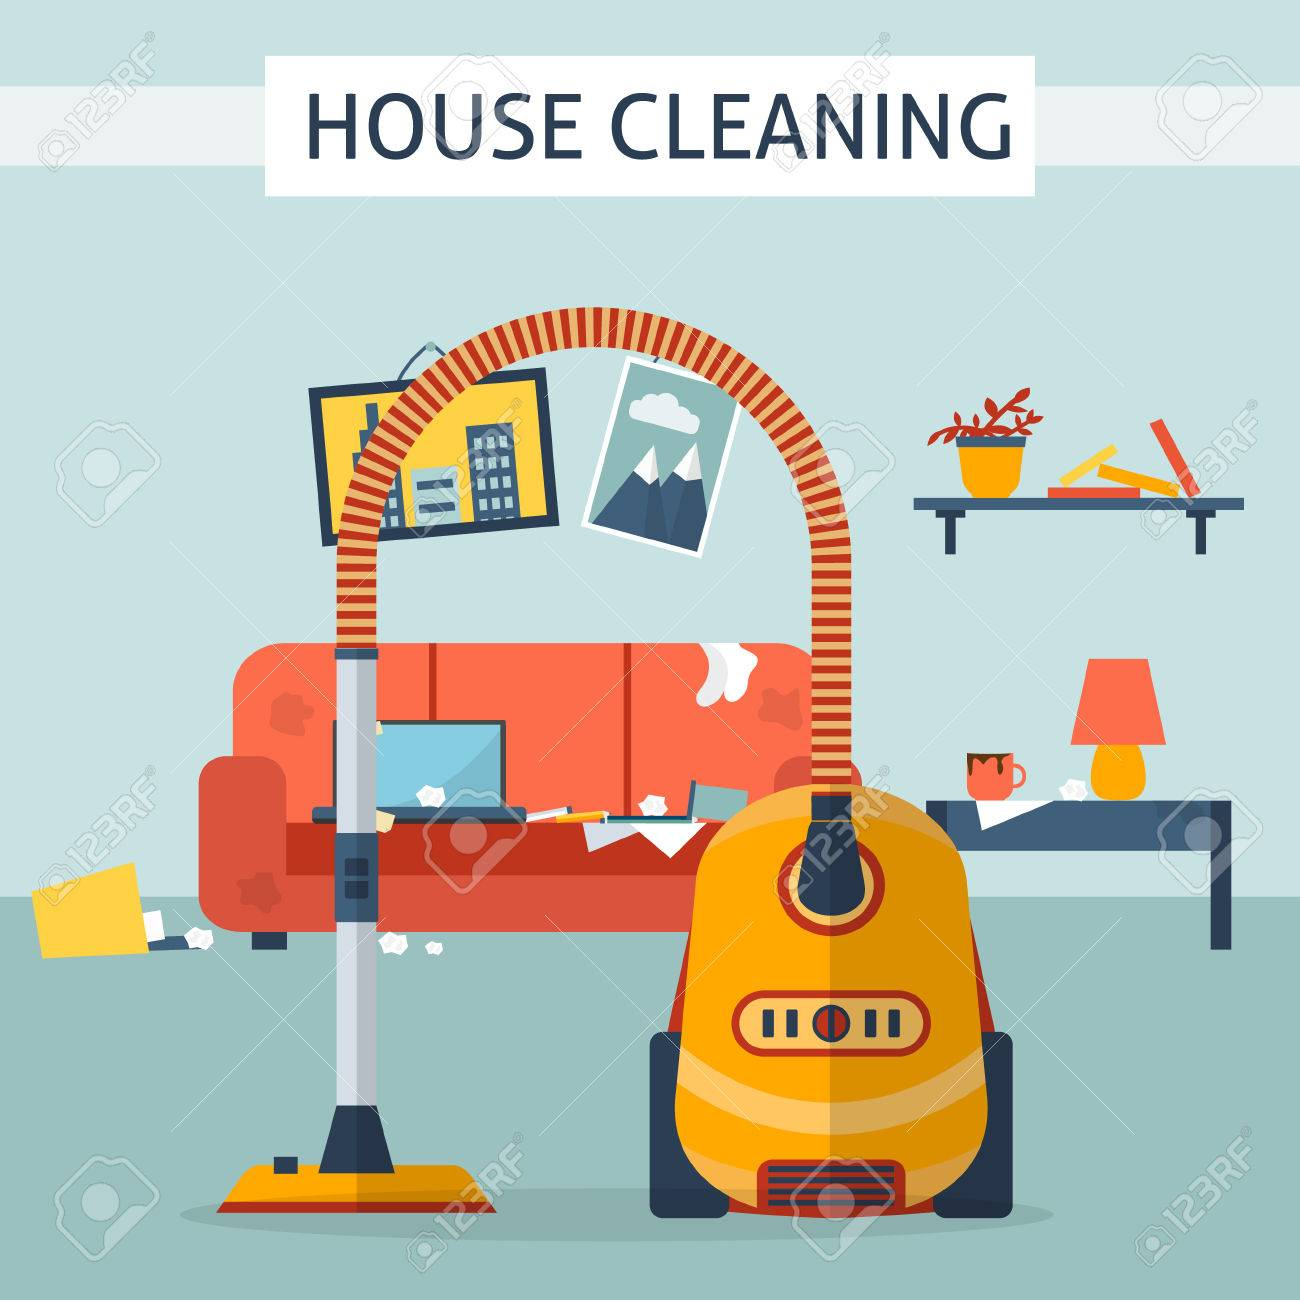 cartoon cleaner stock photos images royalty cartoon cleaner cartoon cleaner dirty and clean room disorder in the interior room before and